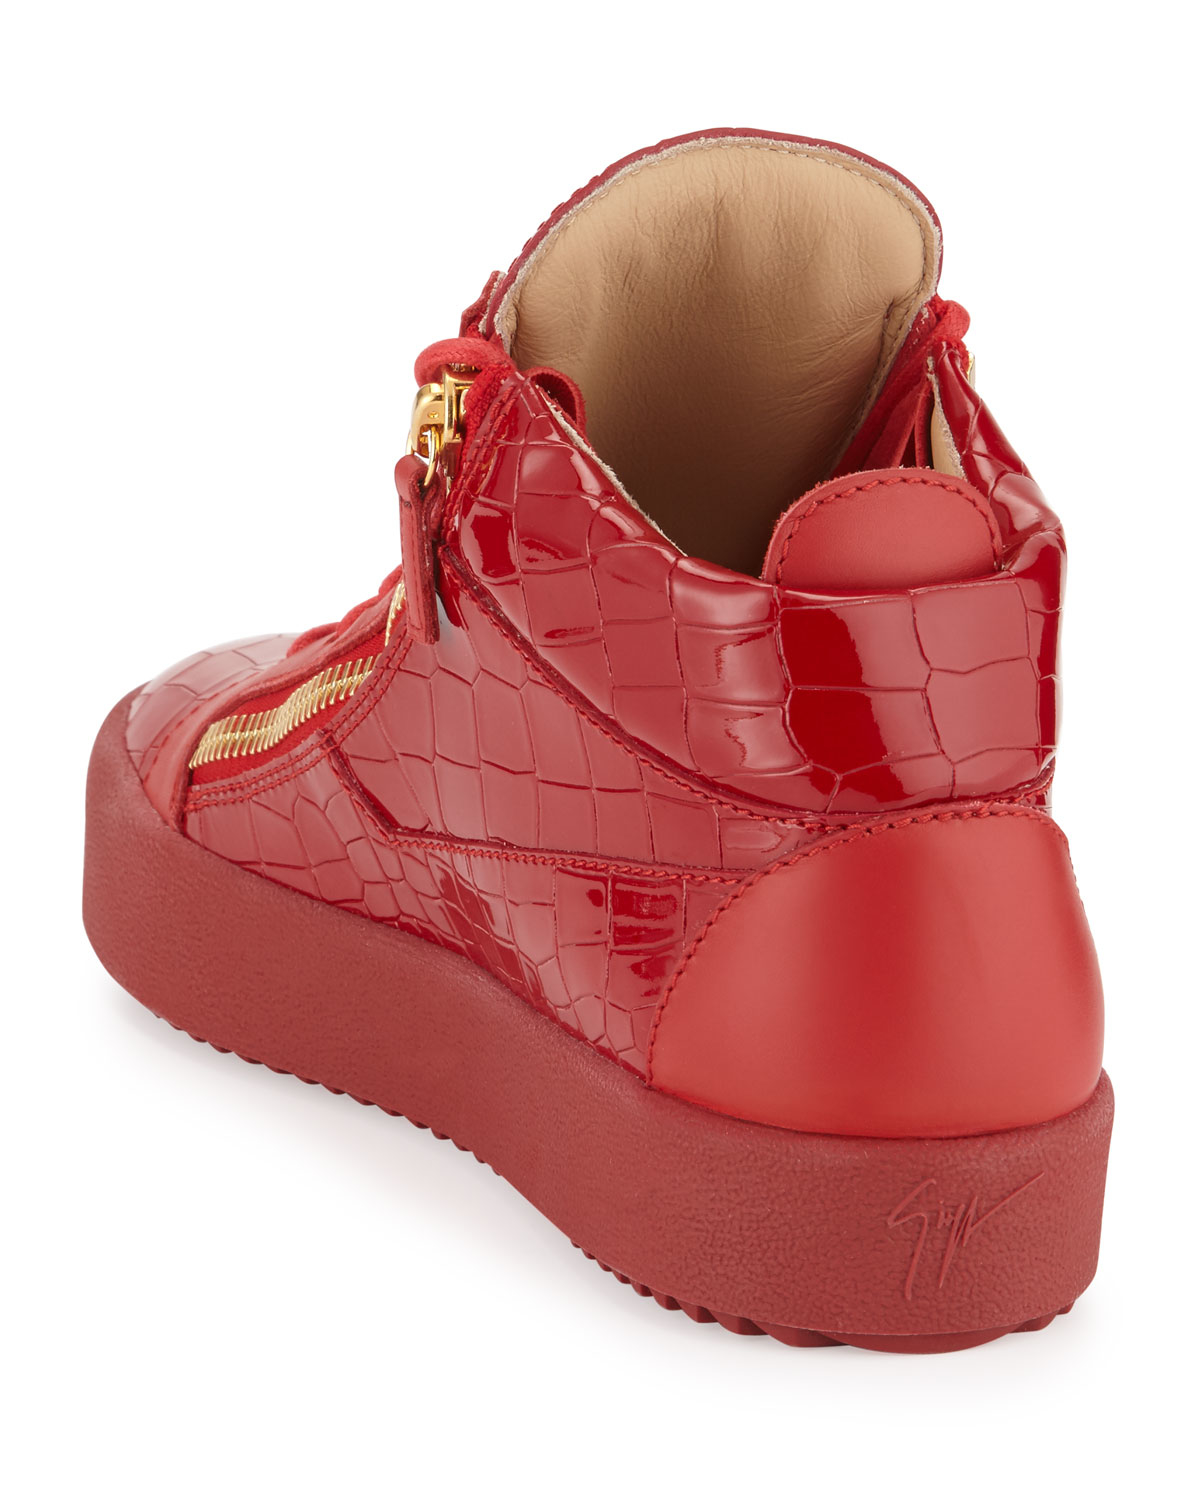 b3cc41630a06c Giuseppe Zanotti Croc Embossed Leather Mid Top Sneakers In Red For